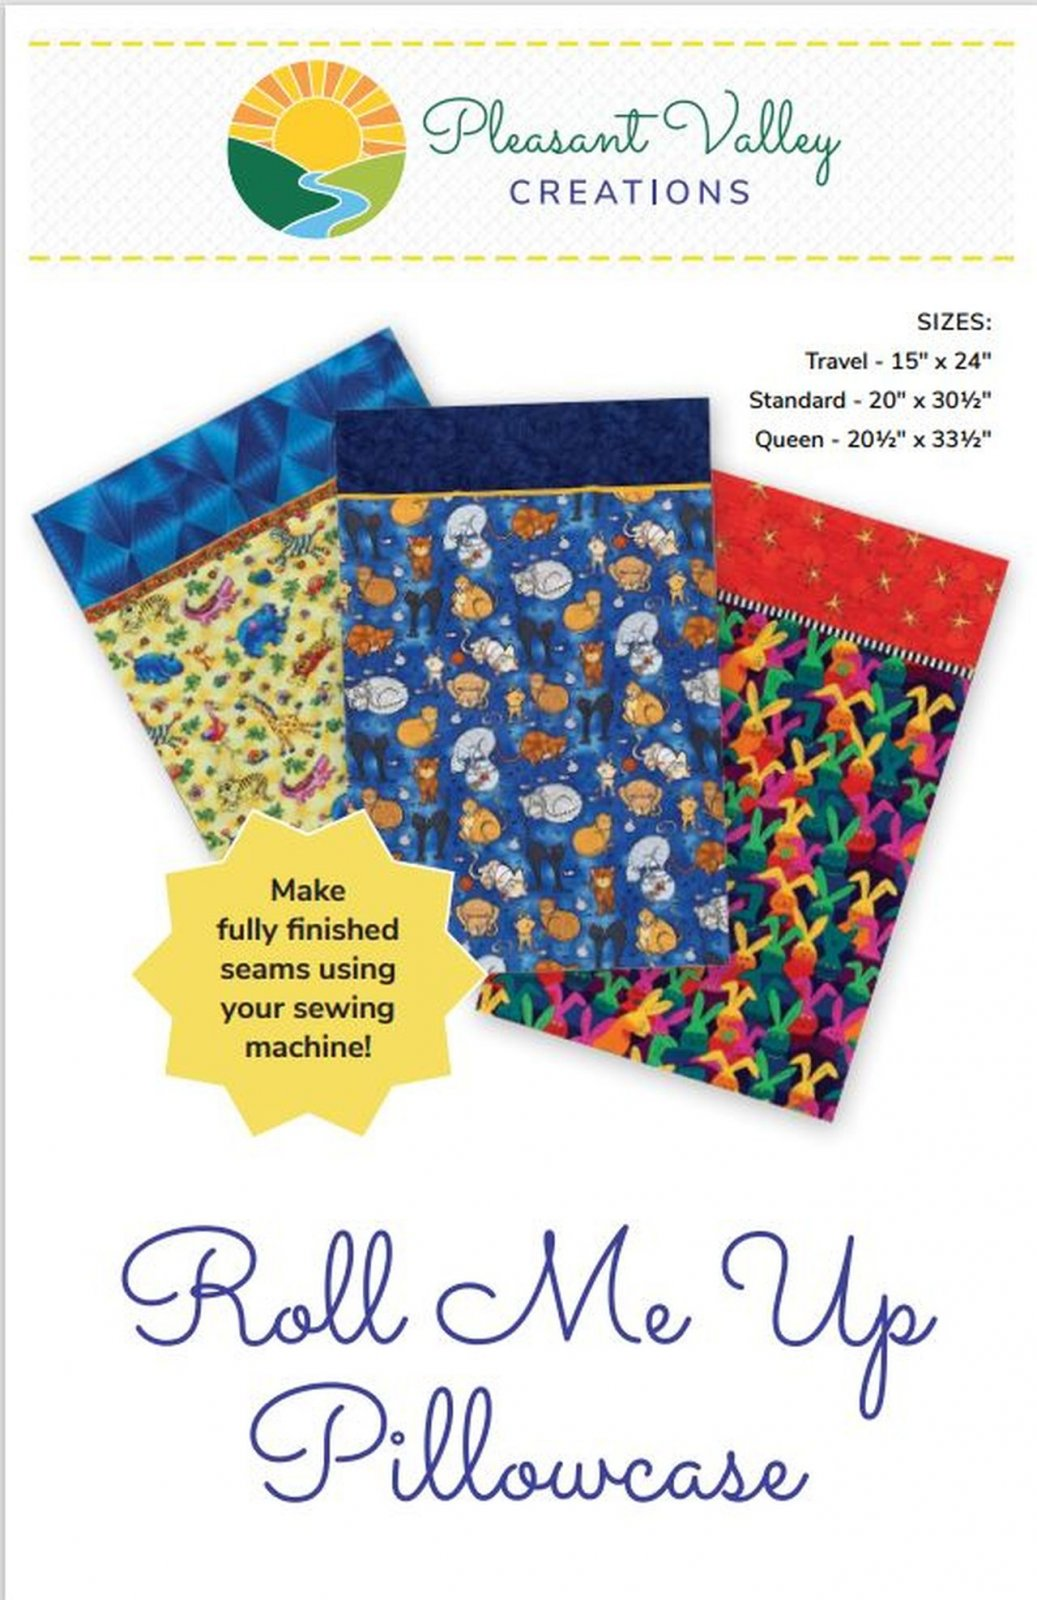 Roll Me Up Pillowcase pattern #459 digital download